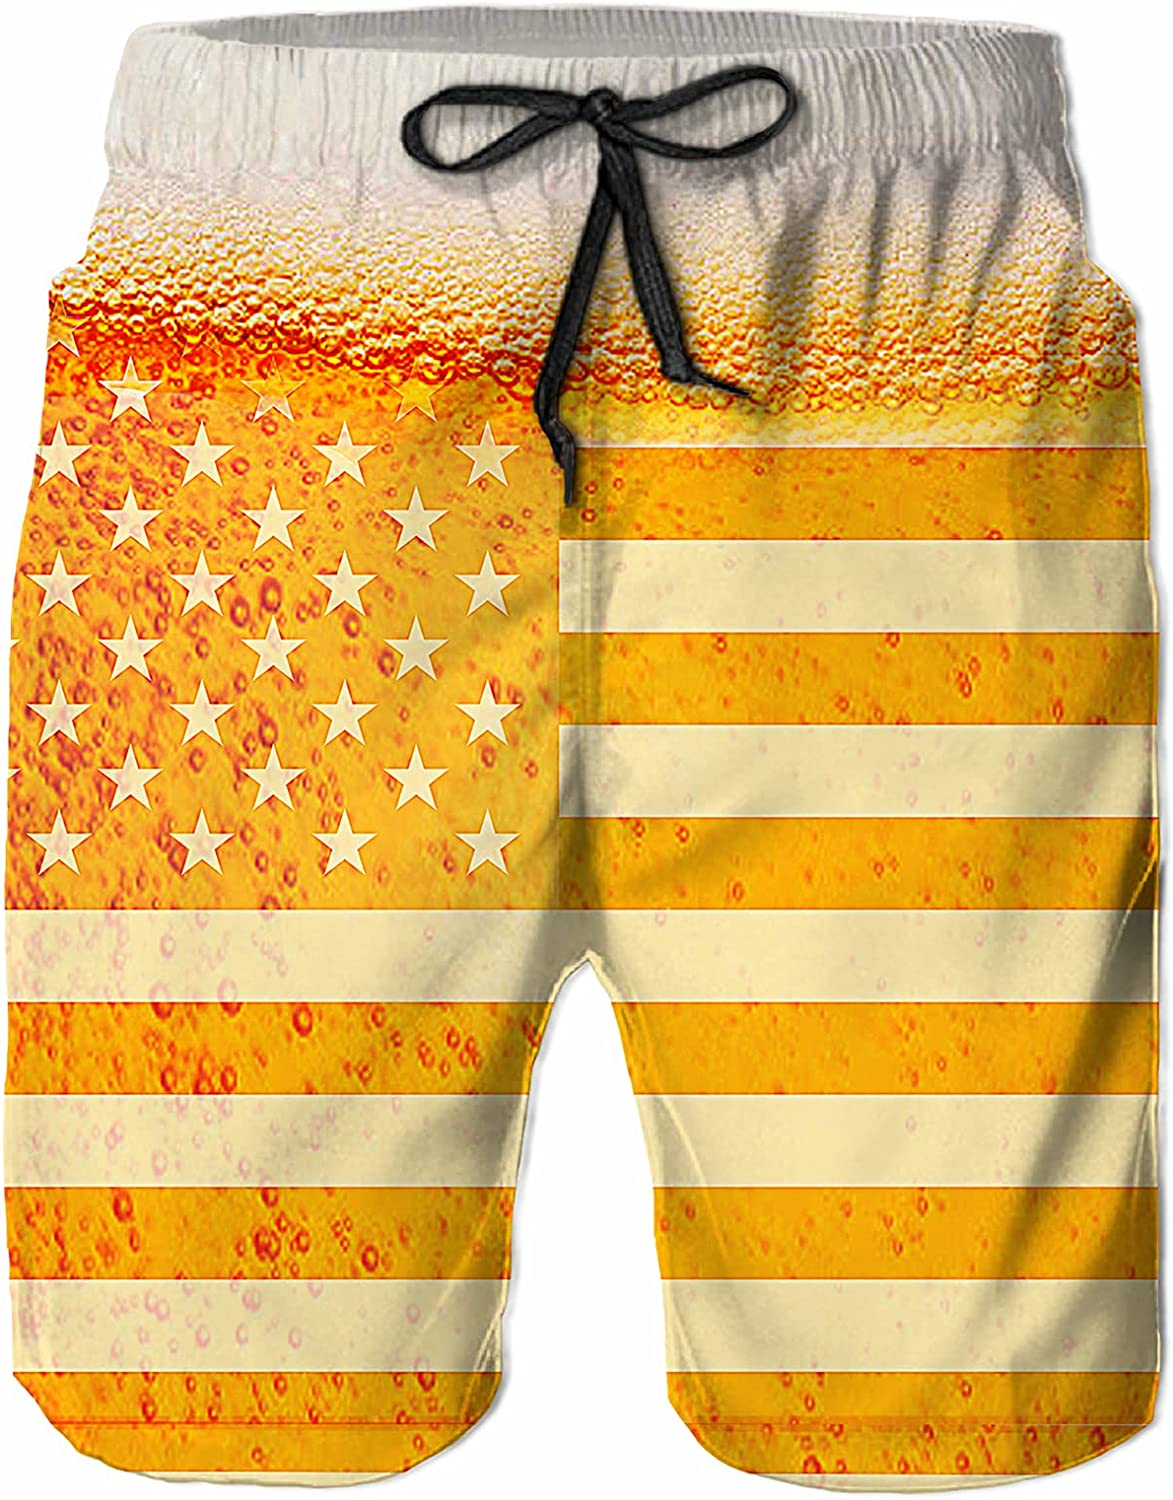 UOER Men's Swim Trunks Beer American Flag Quick Dry Beach Swimsuit Summer Board Shorts with Mesh Lining